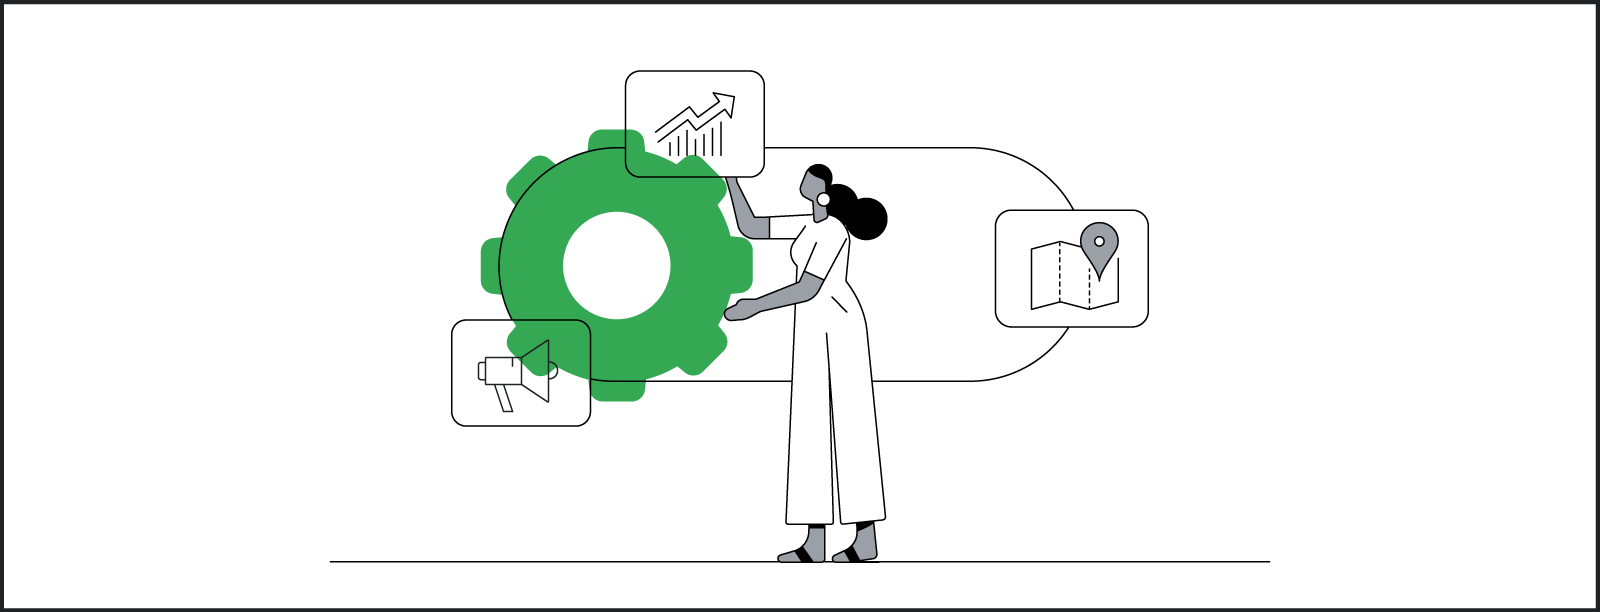 In a stylized illustration, a Black woman interacts with a stylized array of demand settings, like amplification, location, growth, and search.